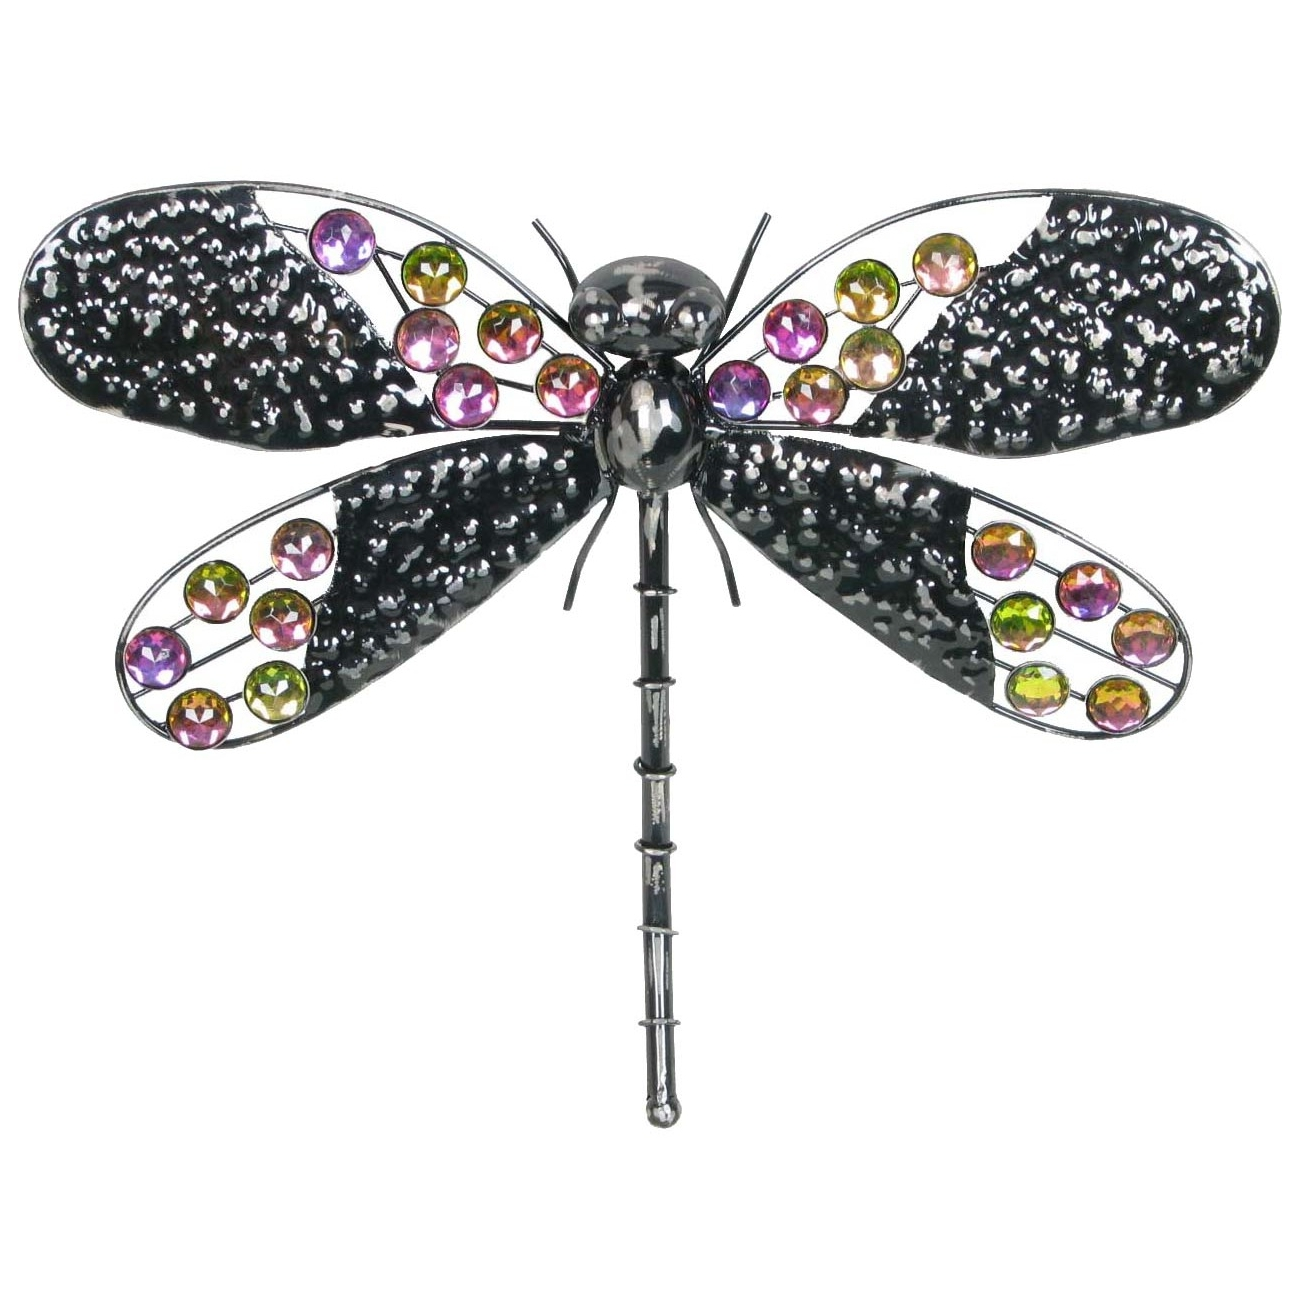 "Very Cool Stuff 16"" Rainbow Bling Dragonfly"